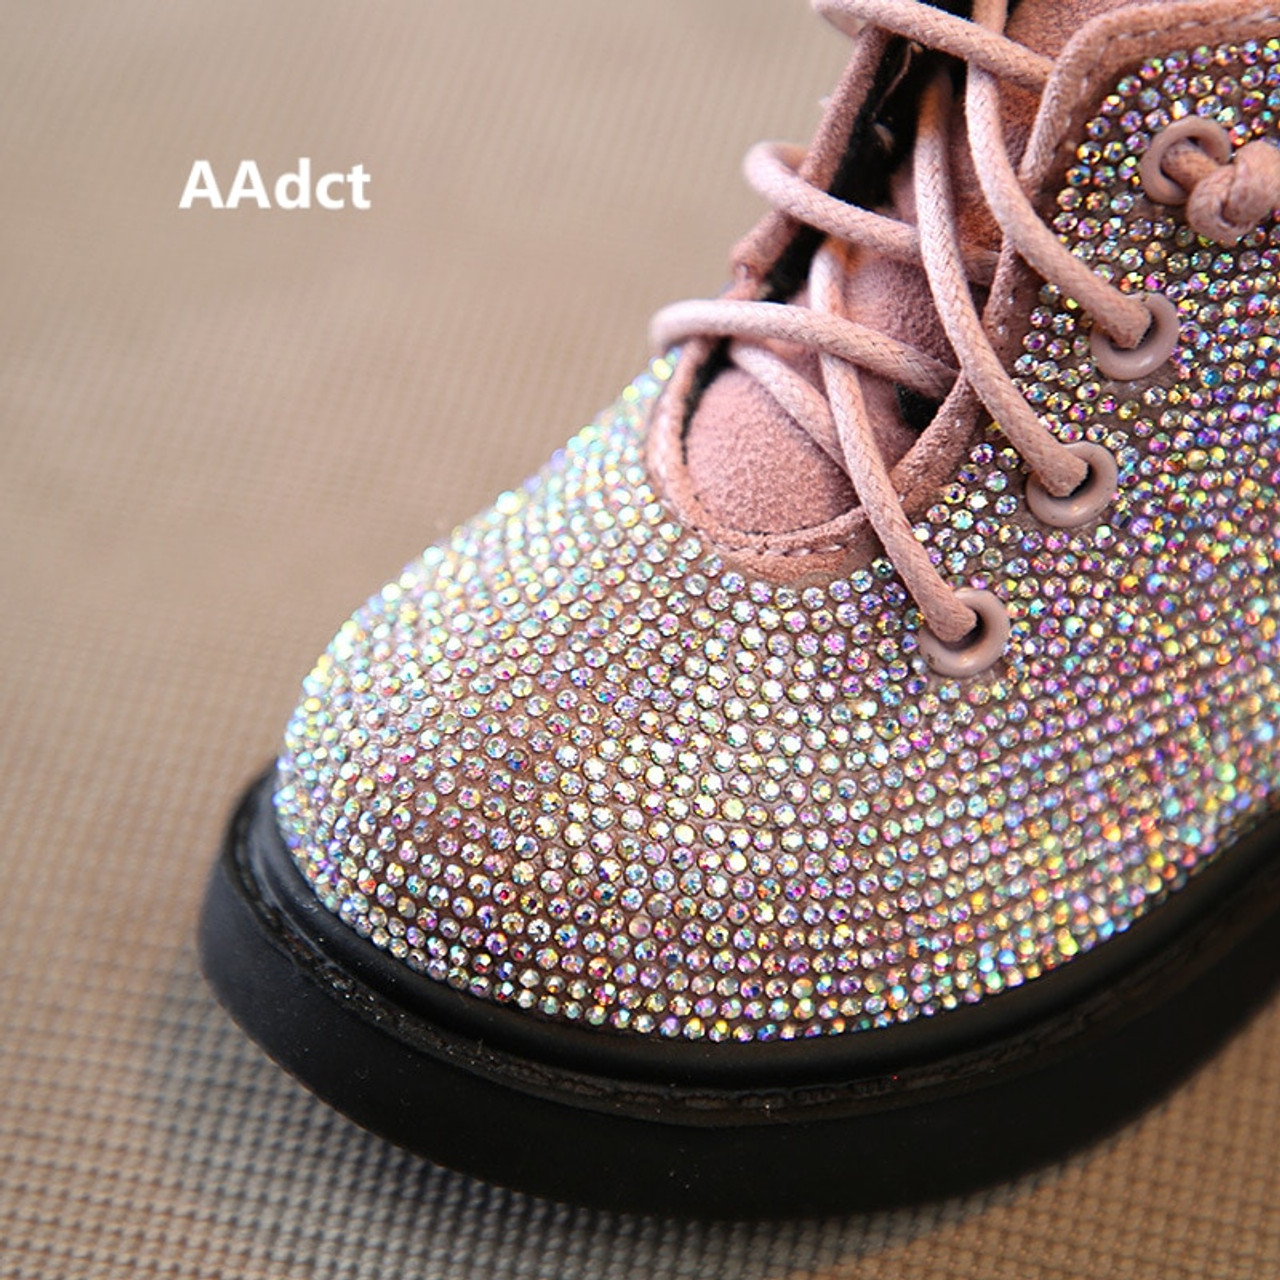 ad552bdb05bc ... AAdct Cotton warm crystal little girls boots Non-slip shinning baby  boots 2018 Winter princess ...